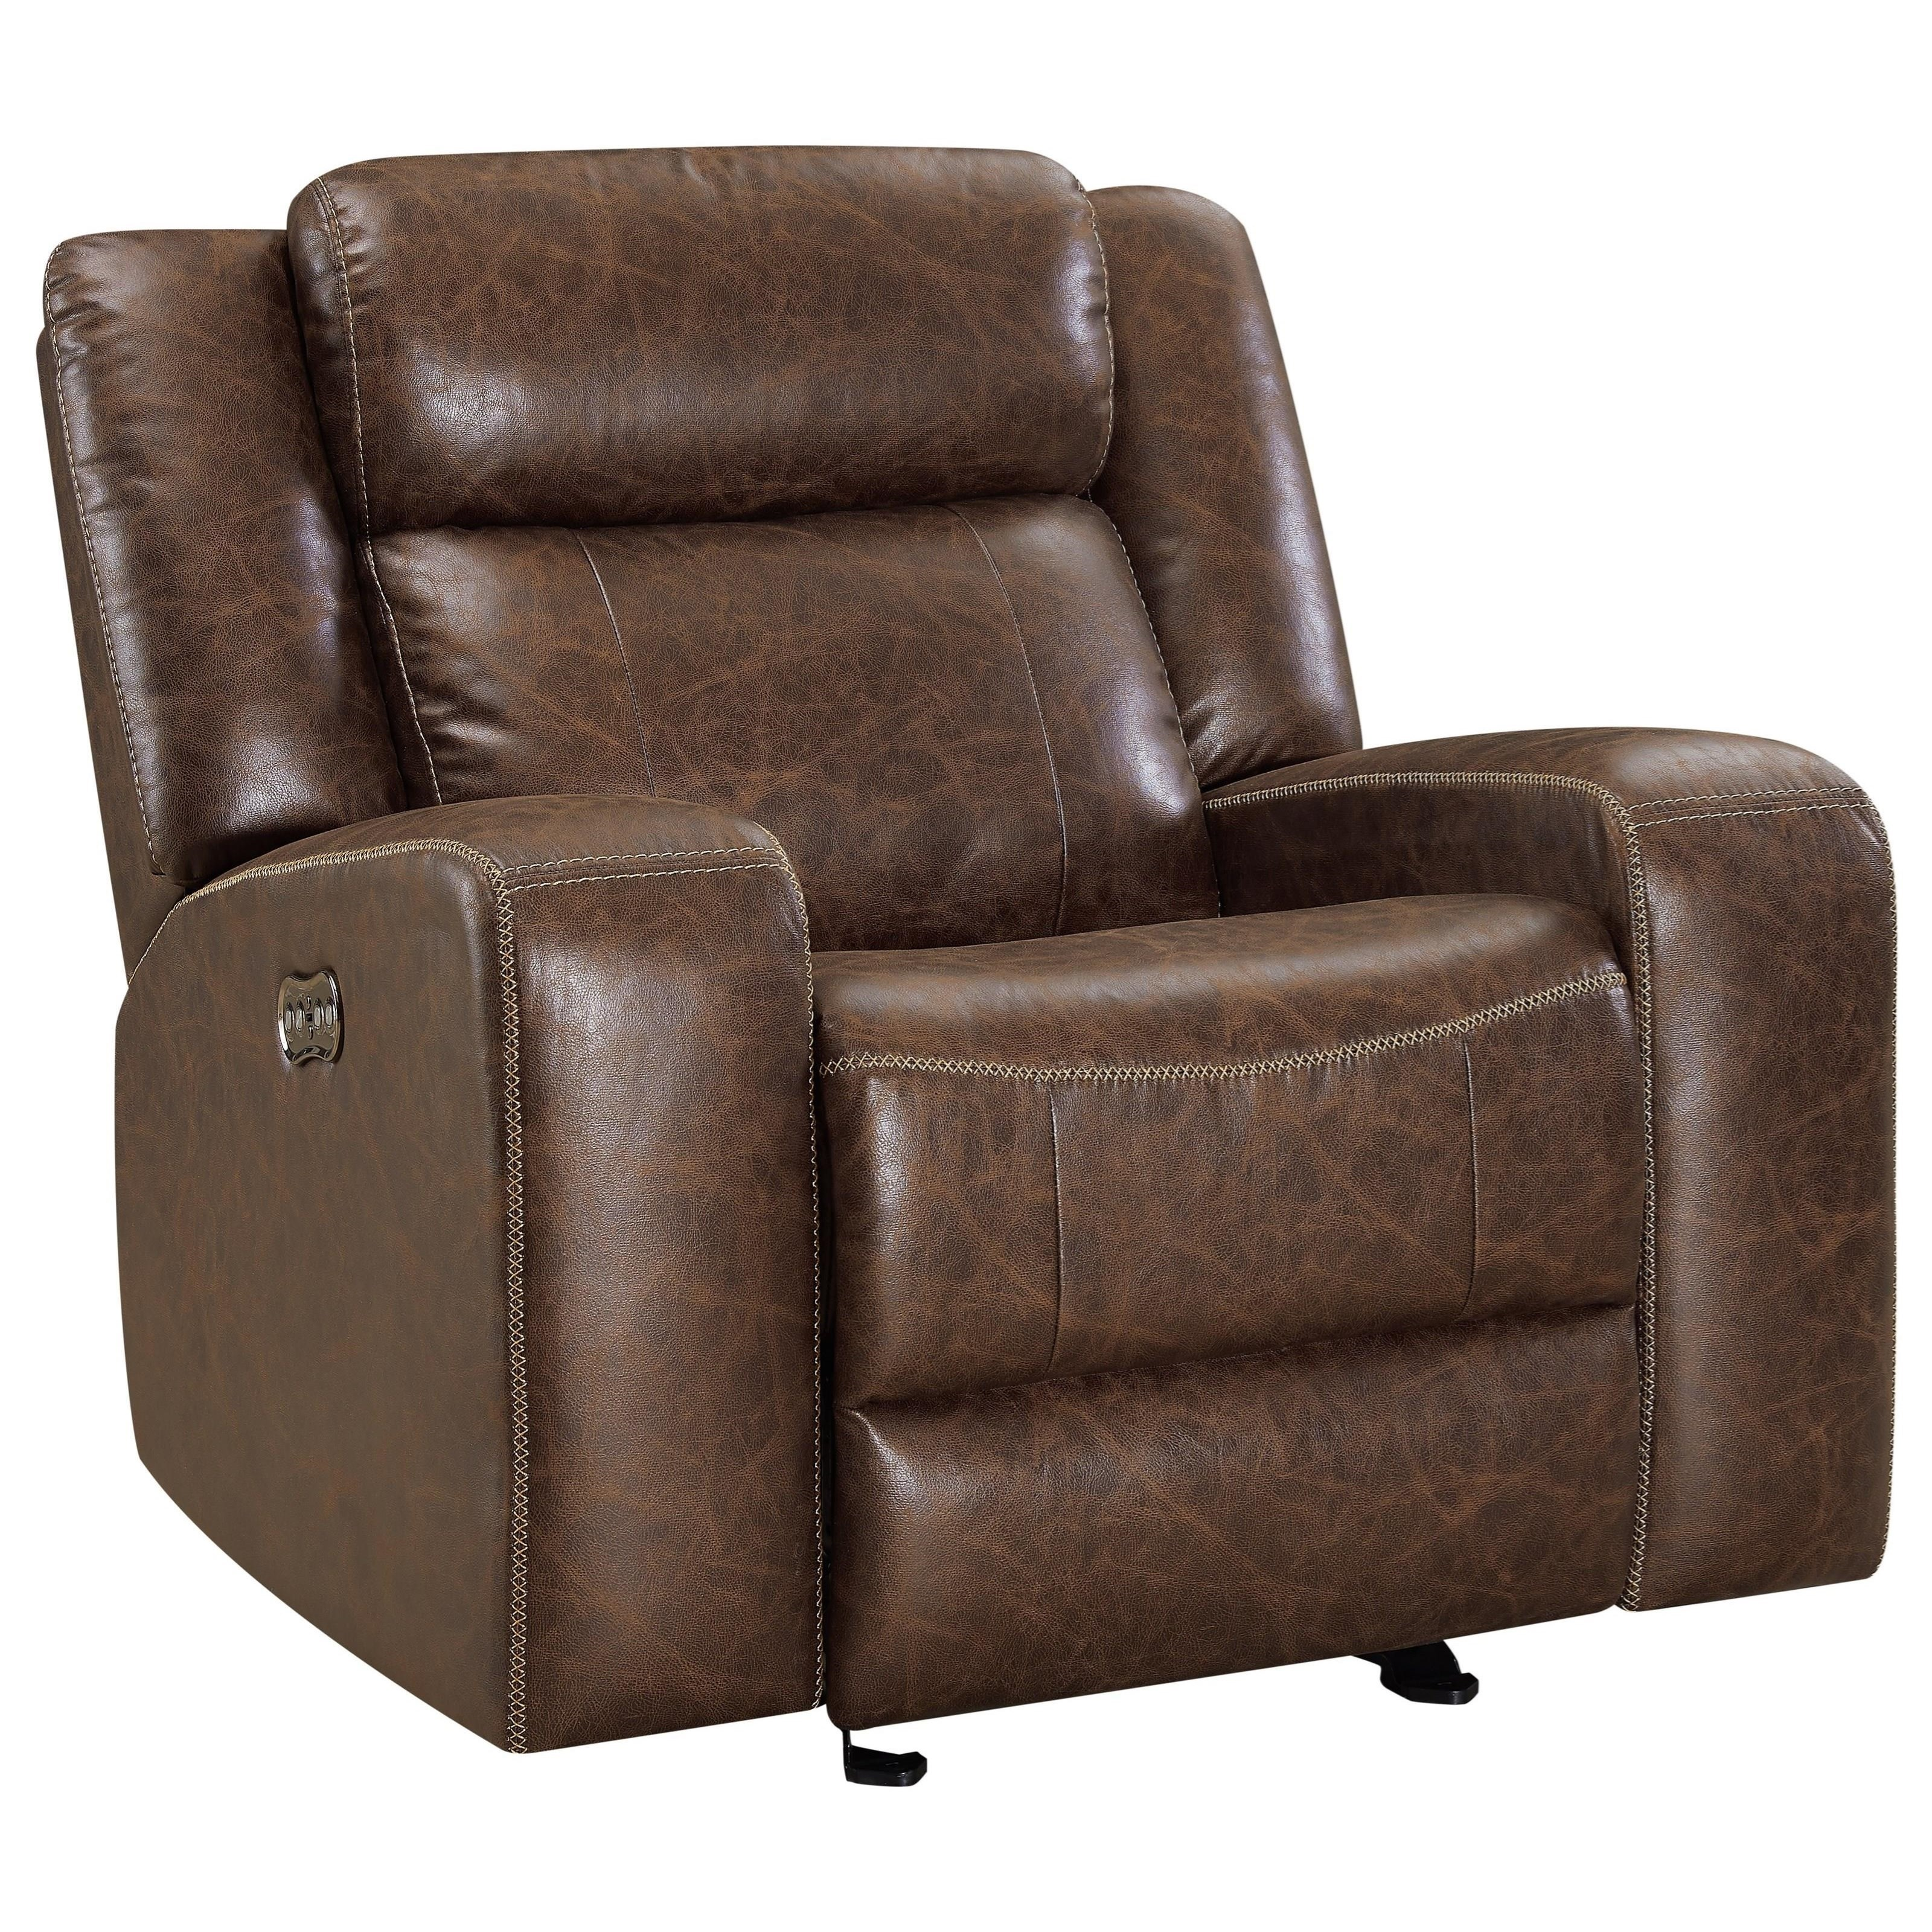 Atticus Power Glider Recliner by New Classic at Rife's Home Furniture